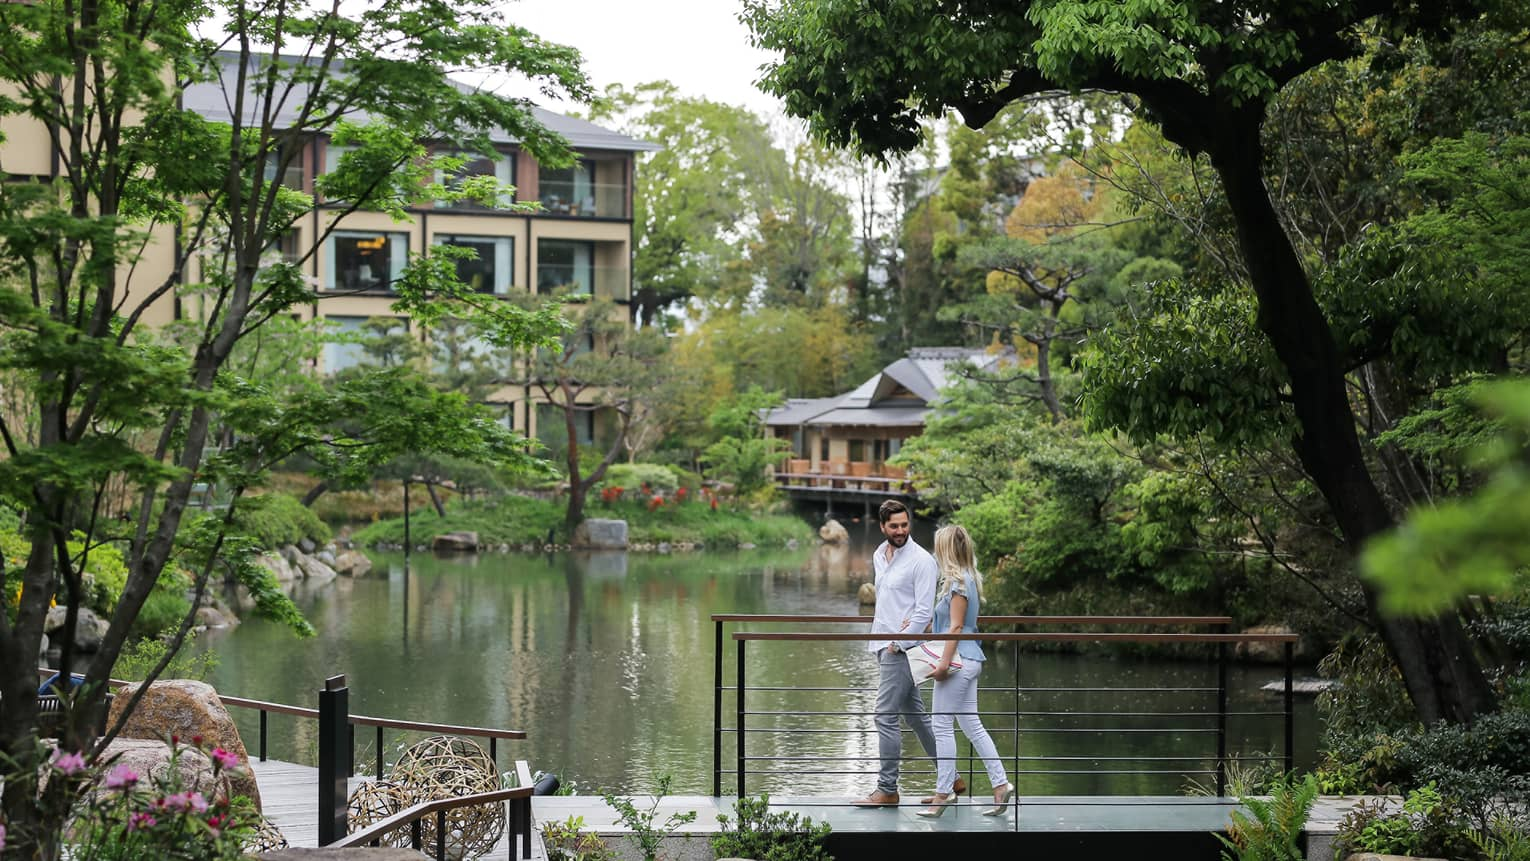 Couple walks across small bridge over pond surrounded by trees